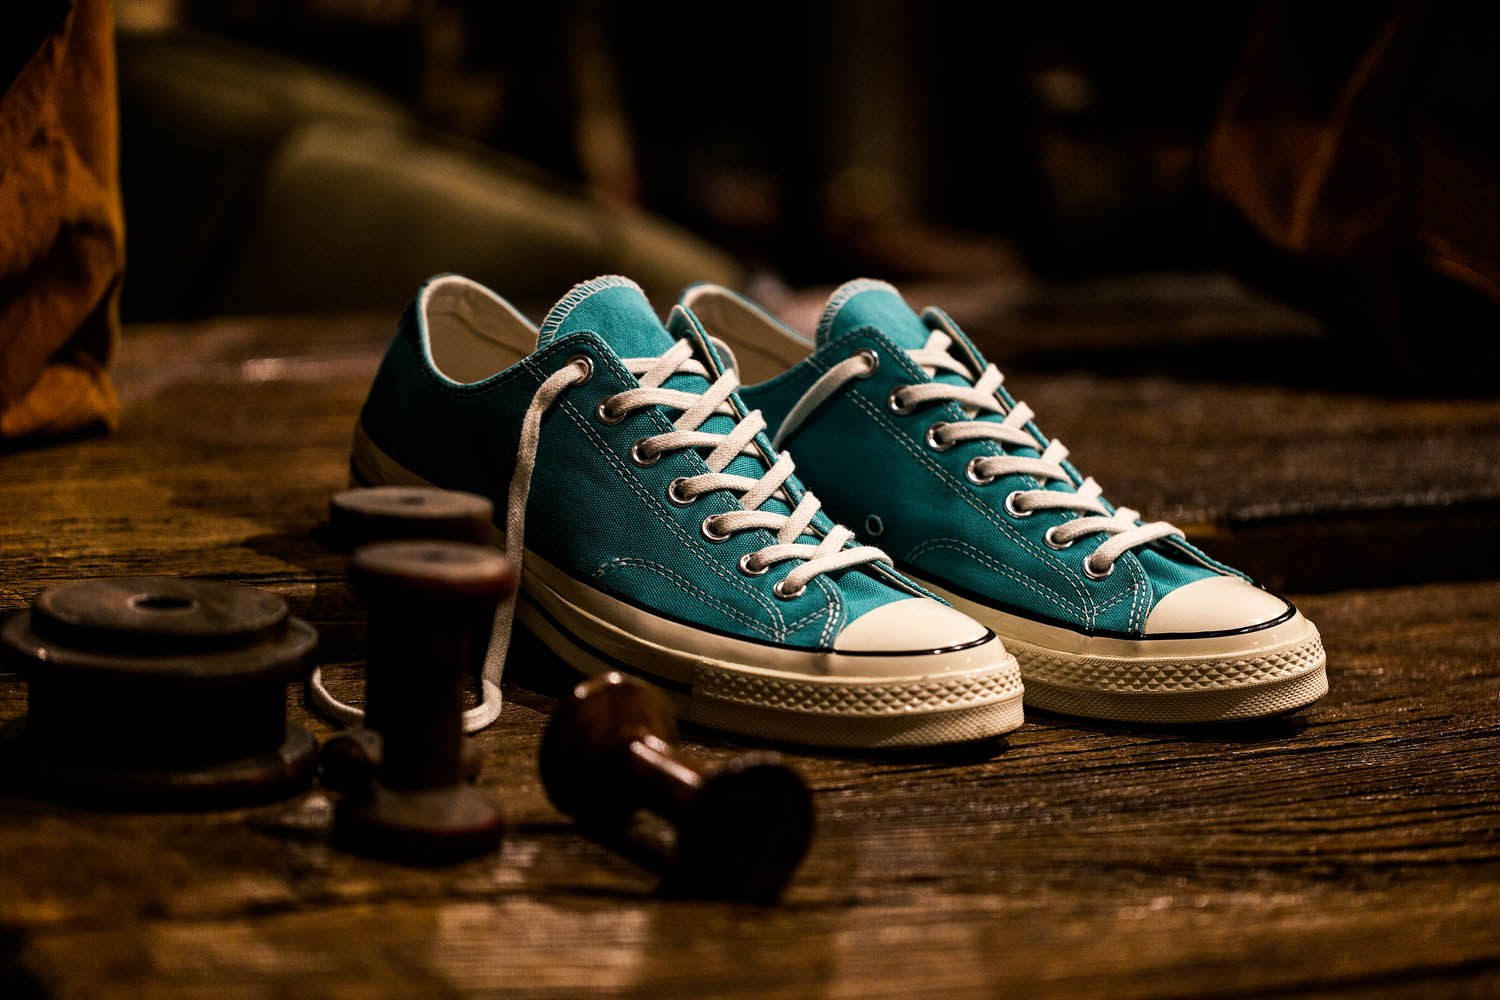 converse-shows-its-colors-with-its-latest-chuck-taylor-all-star-70s-release-18